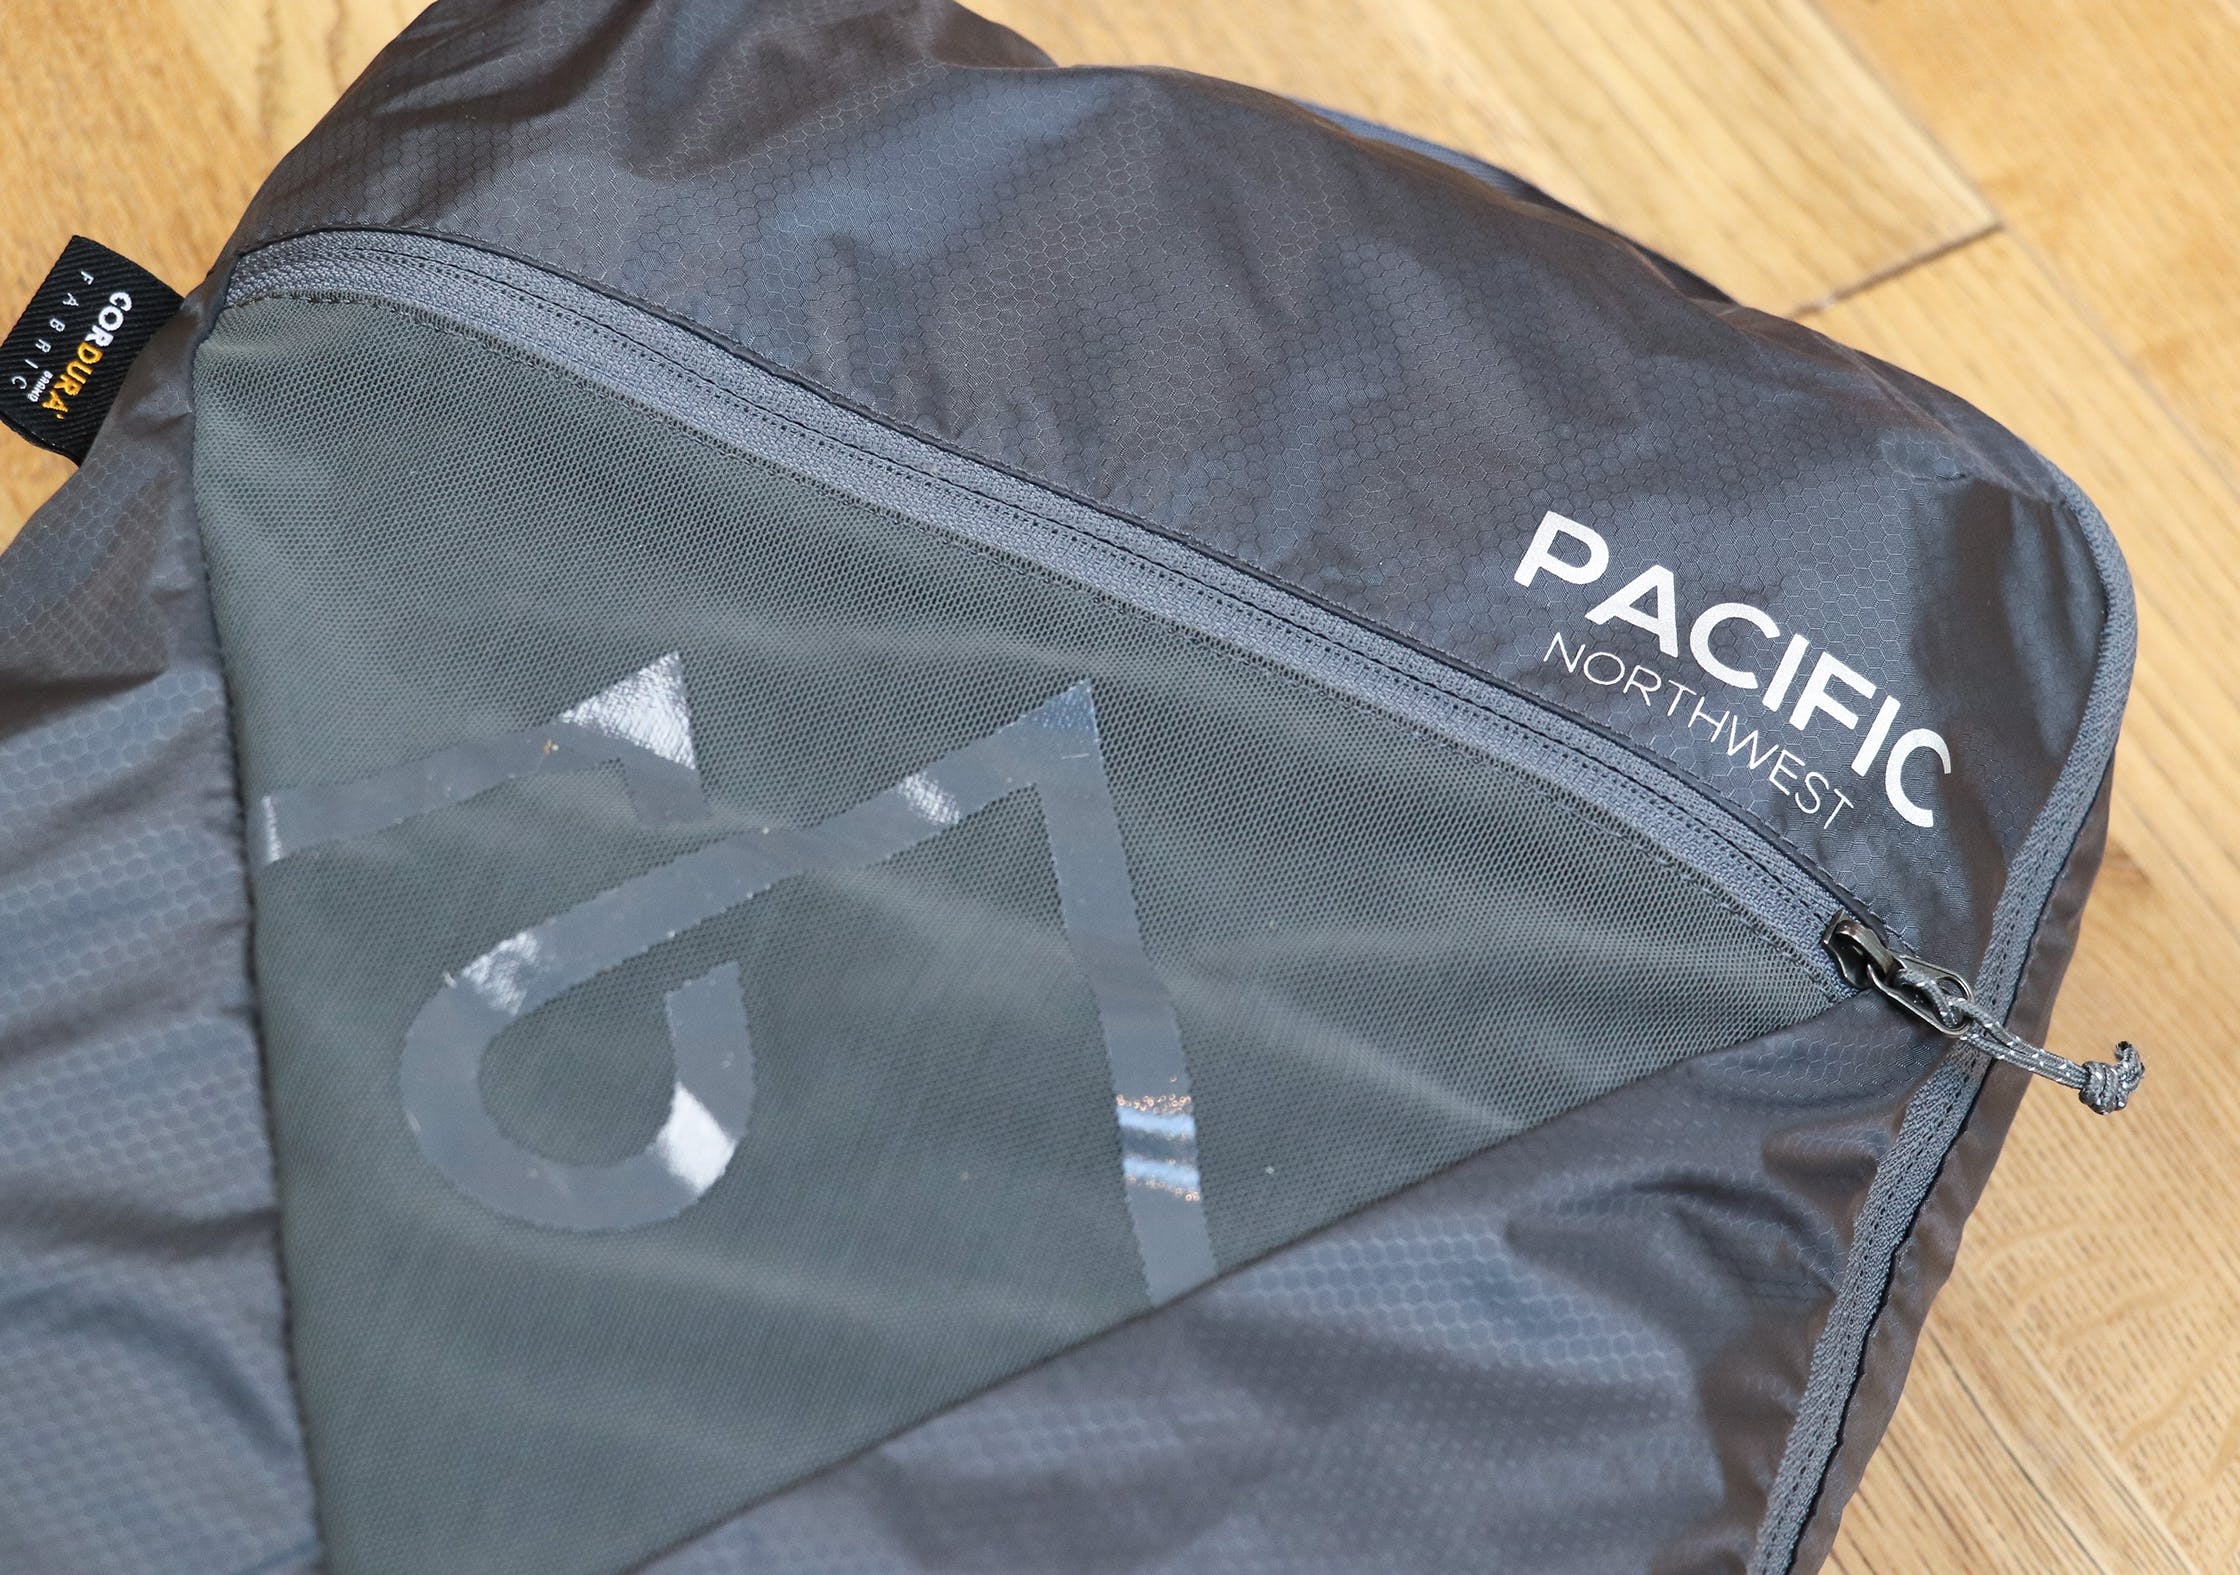 Logos & Branding On The Pacific Northwest Elfin Packing Cubes